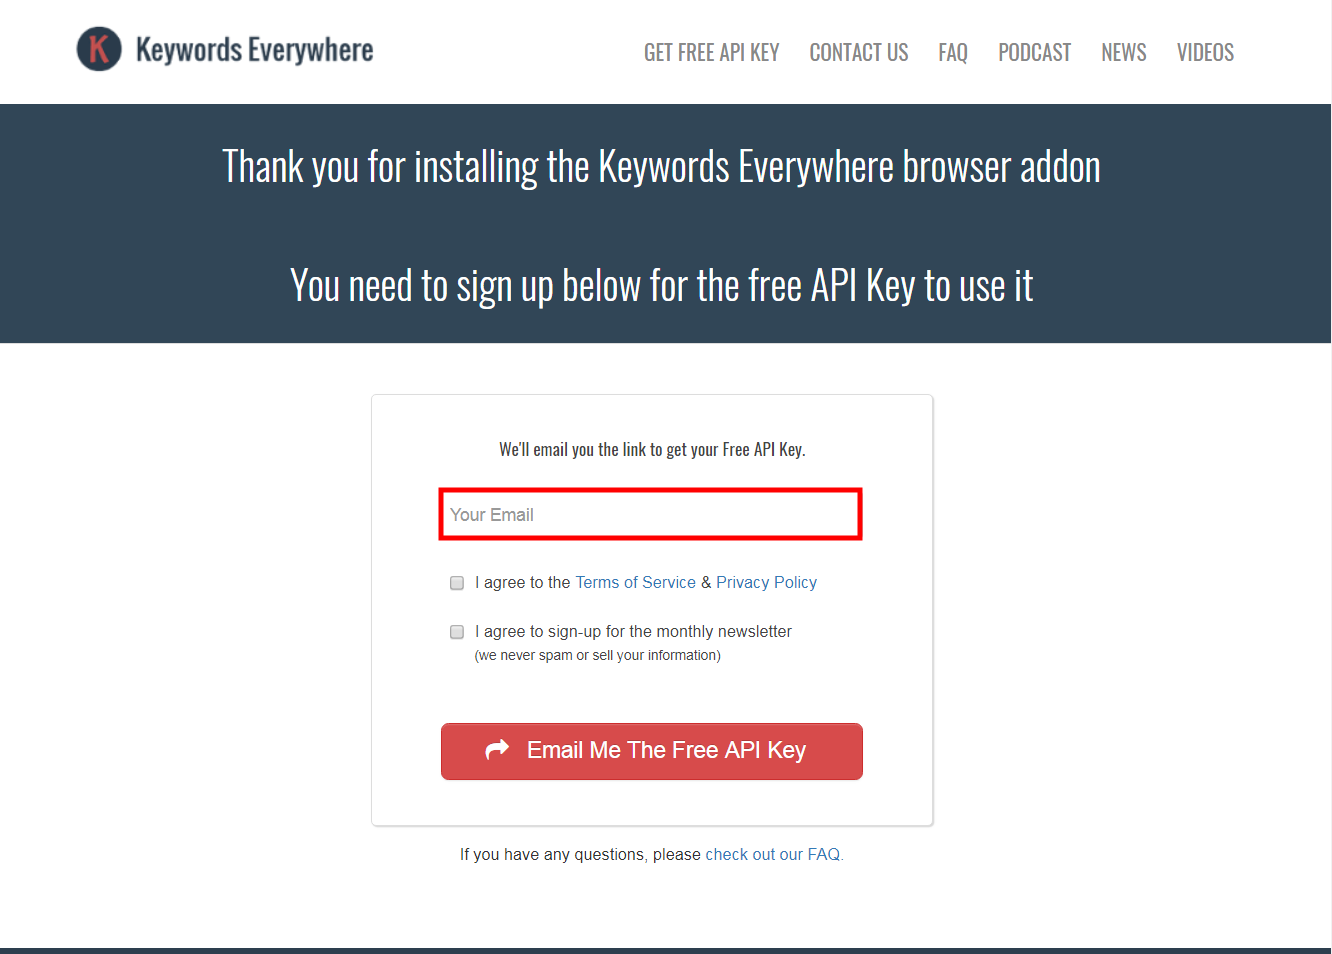 Keywords Everywhere Get API Key